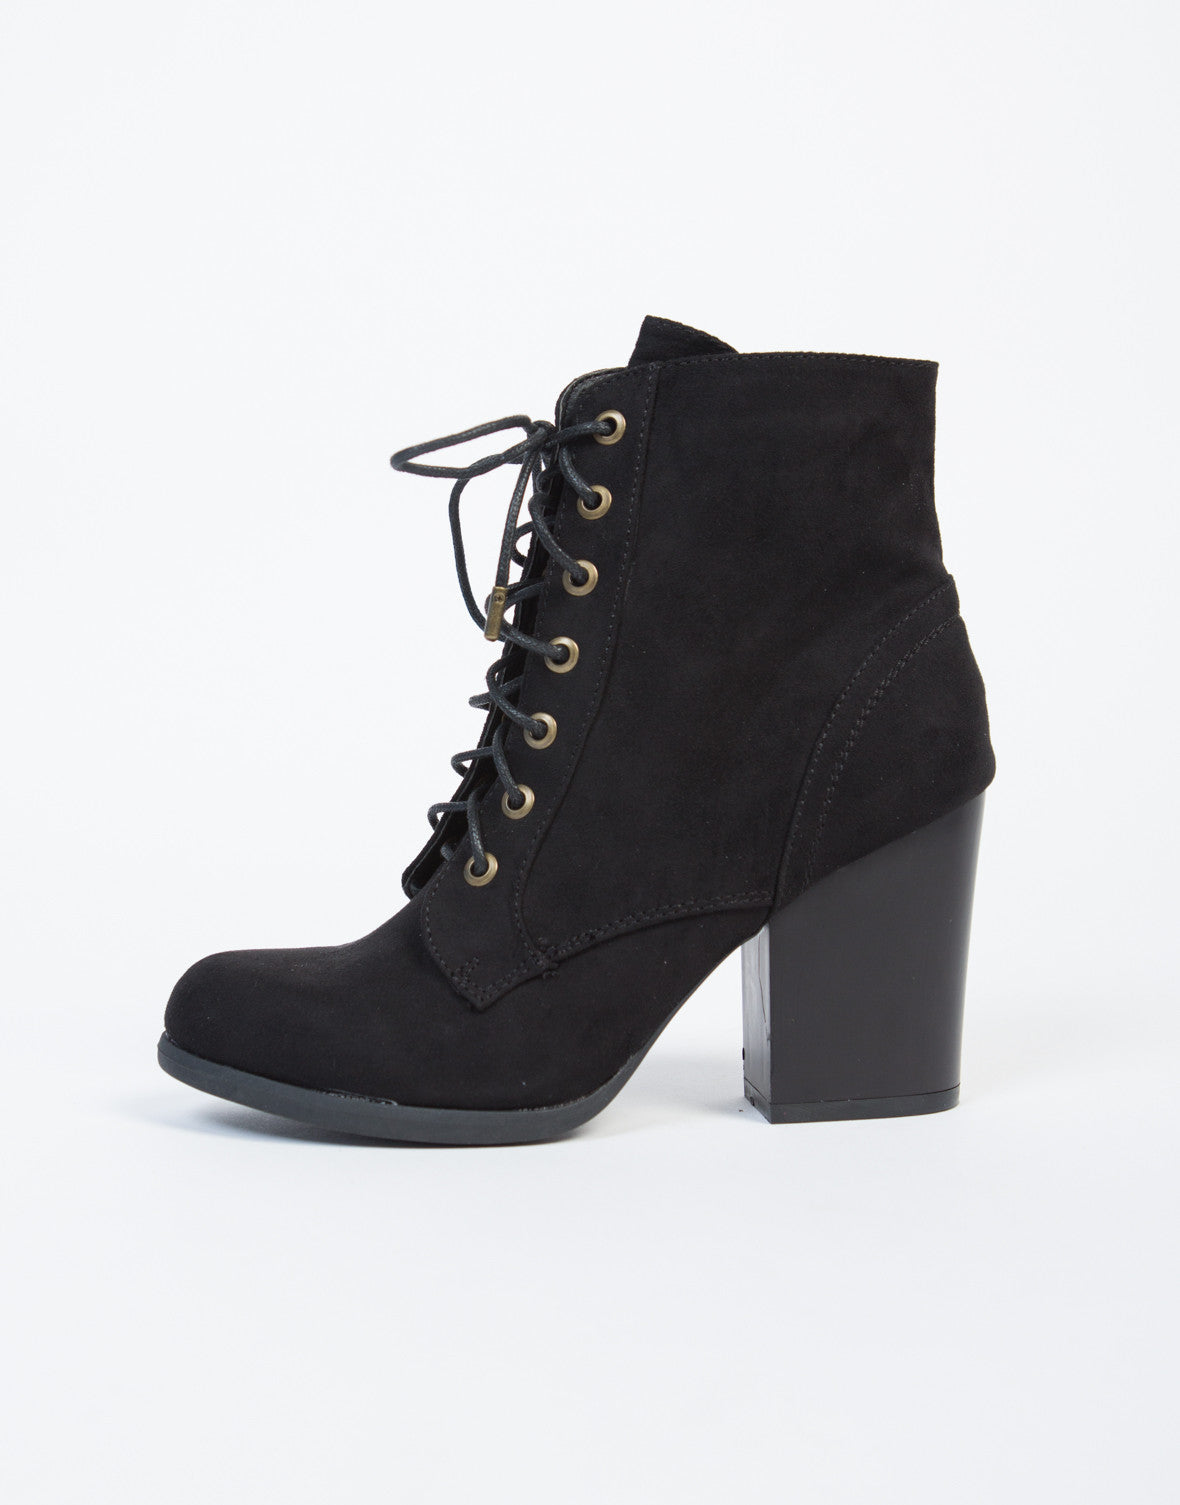 Lace-Up Wooden Heel Ankle Boots - Brown